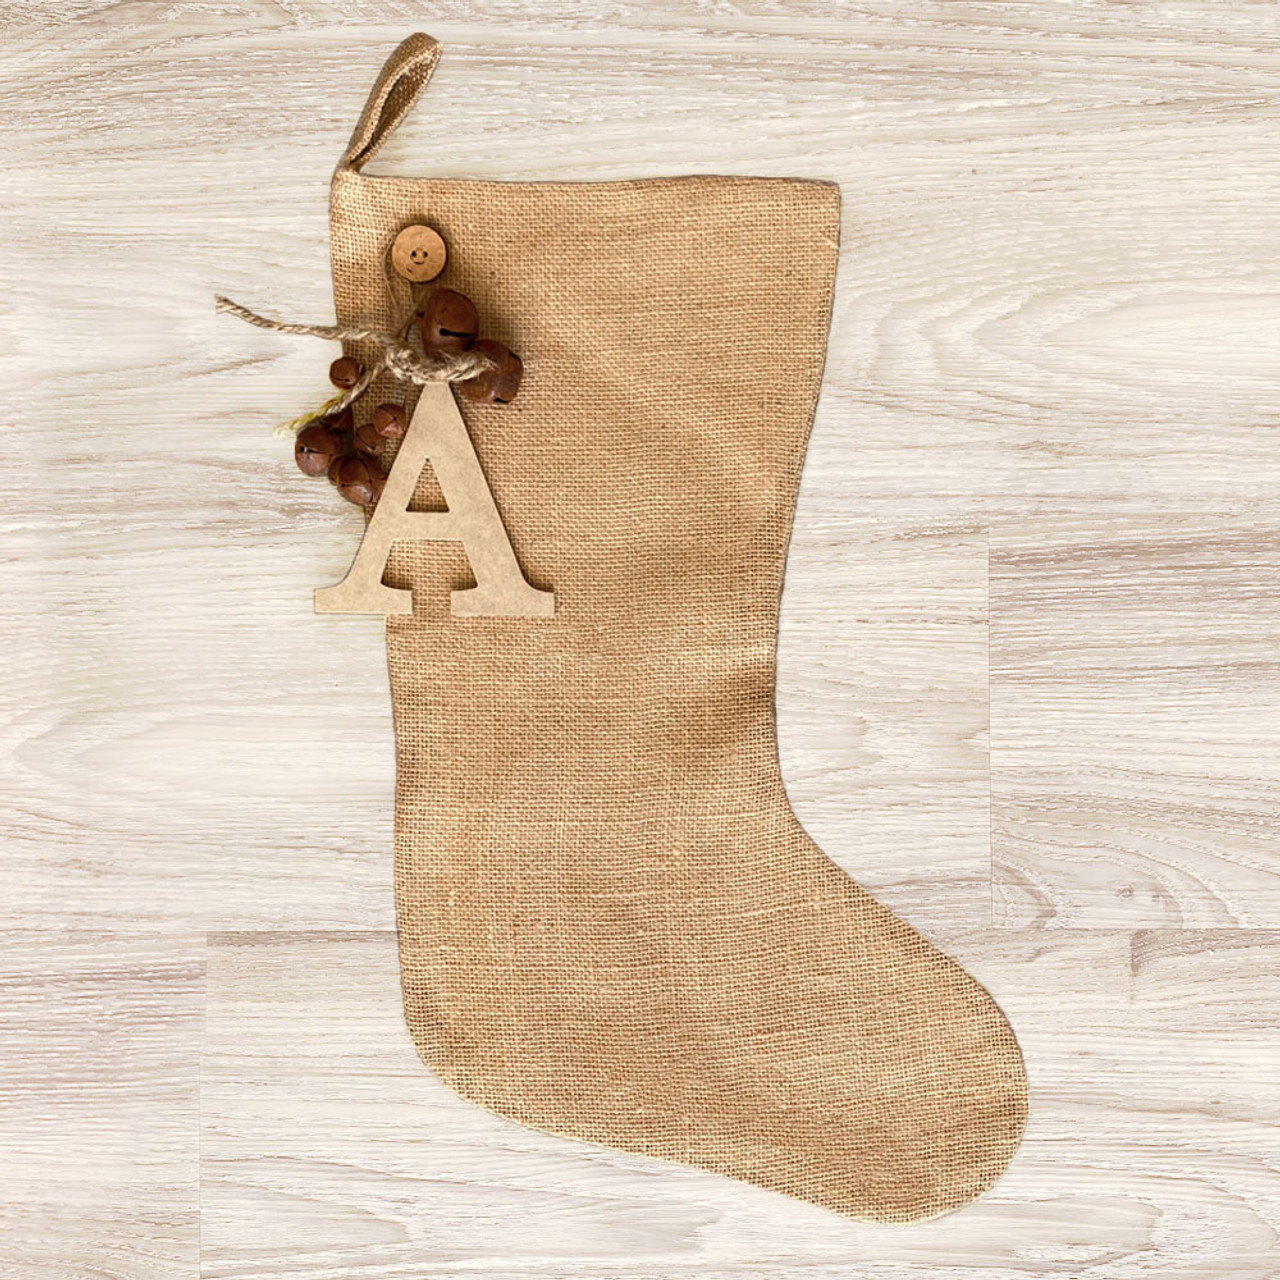 Burlap Christmas Stocking With Rusty Bells Ornament and Personalized Letter Charm